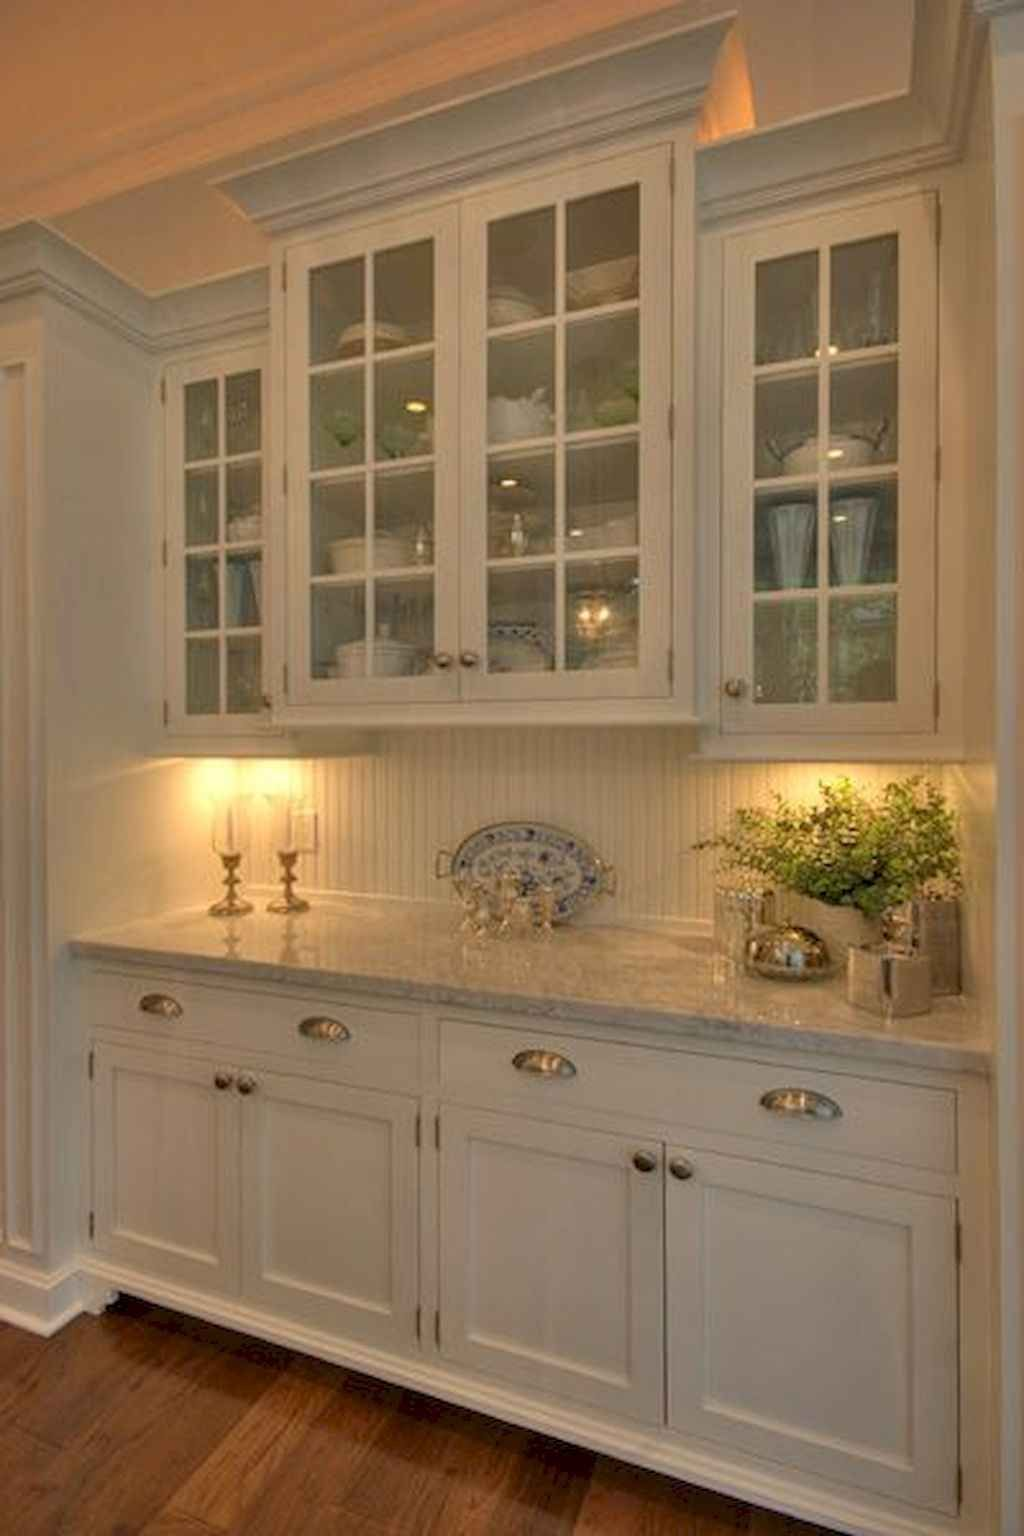 Best 100 white kitchen cabinets decor ideas for farmhouse style design (28 images